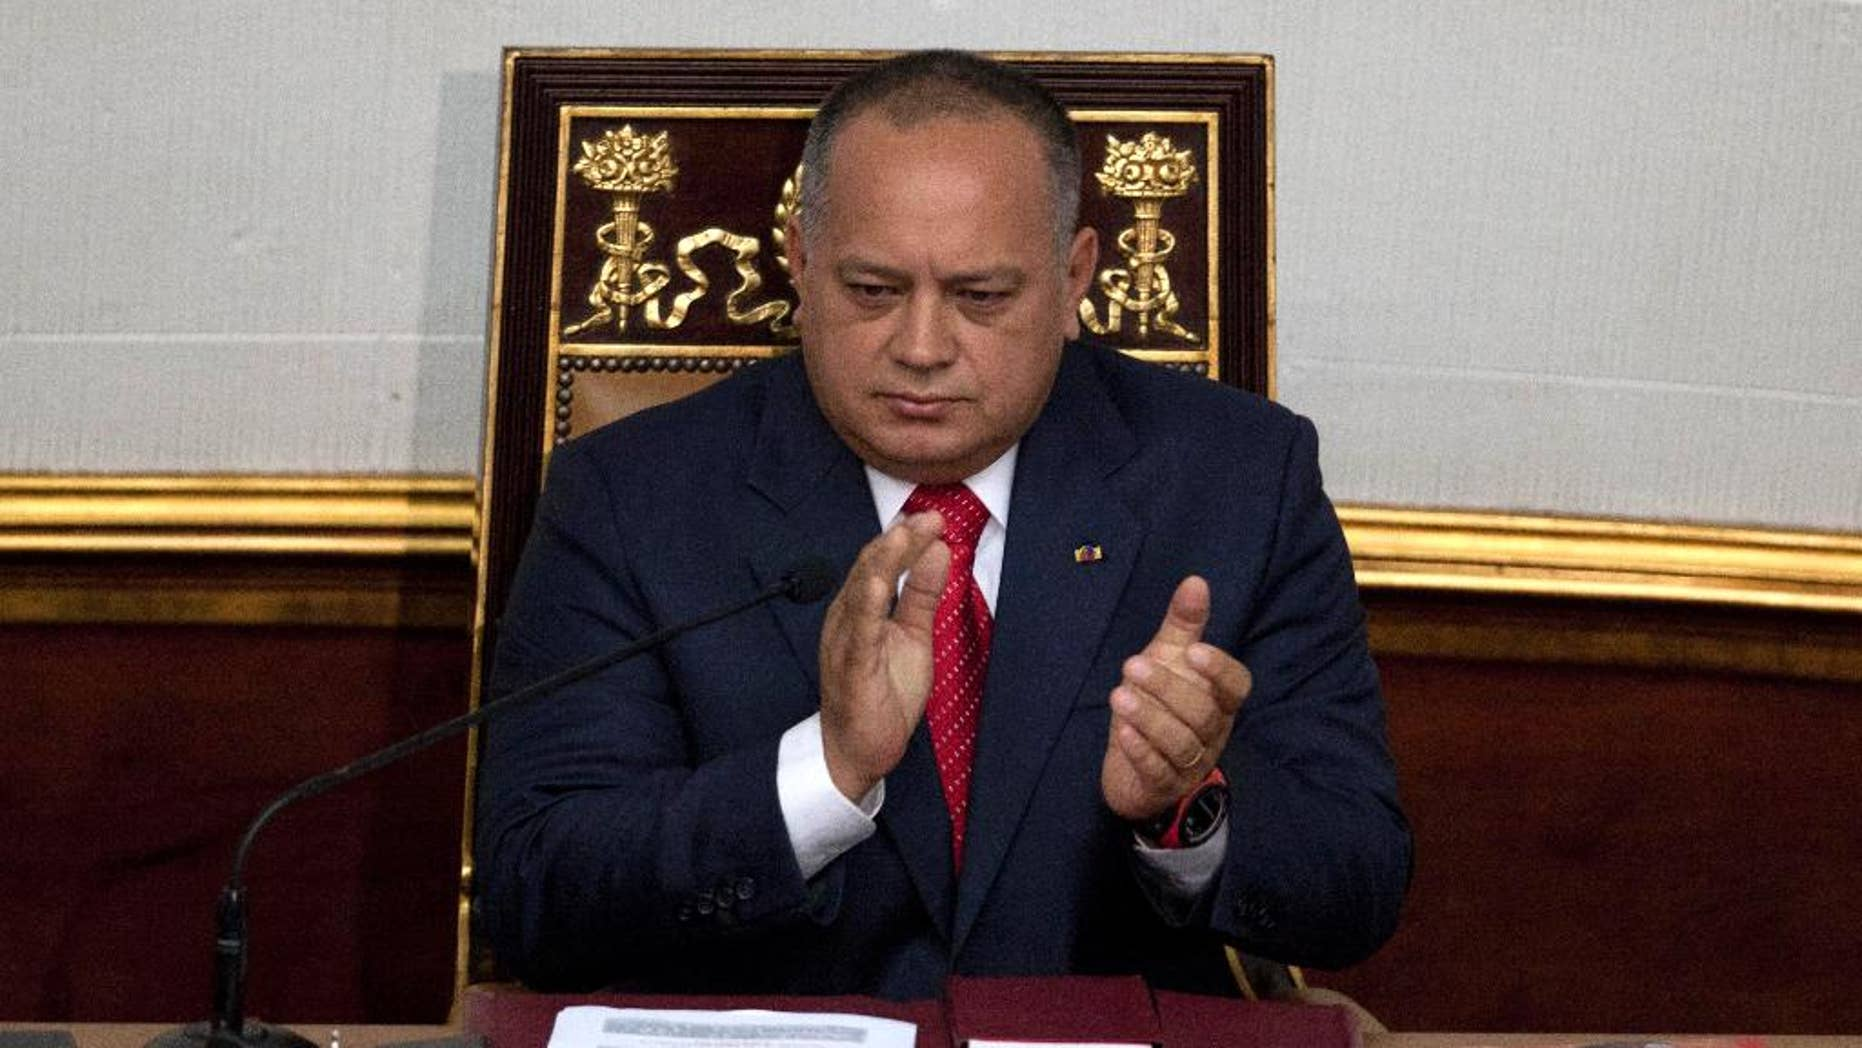 FILE - In this Jan. 5, 2013 file photo, National Assembly President Diosdado Cabello applauds before addressing the National Assembly in Caracas, Venezuela. Cabello said on Wednesday, May 13, 2015 he is asking courts to bar news executives from leaving the country while he's suing them for alleged defamation. (AP Photo/Ariana Cubillos, File)